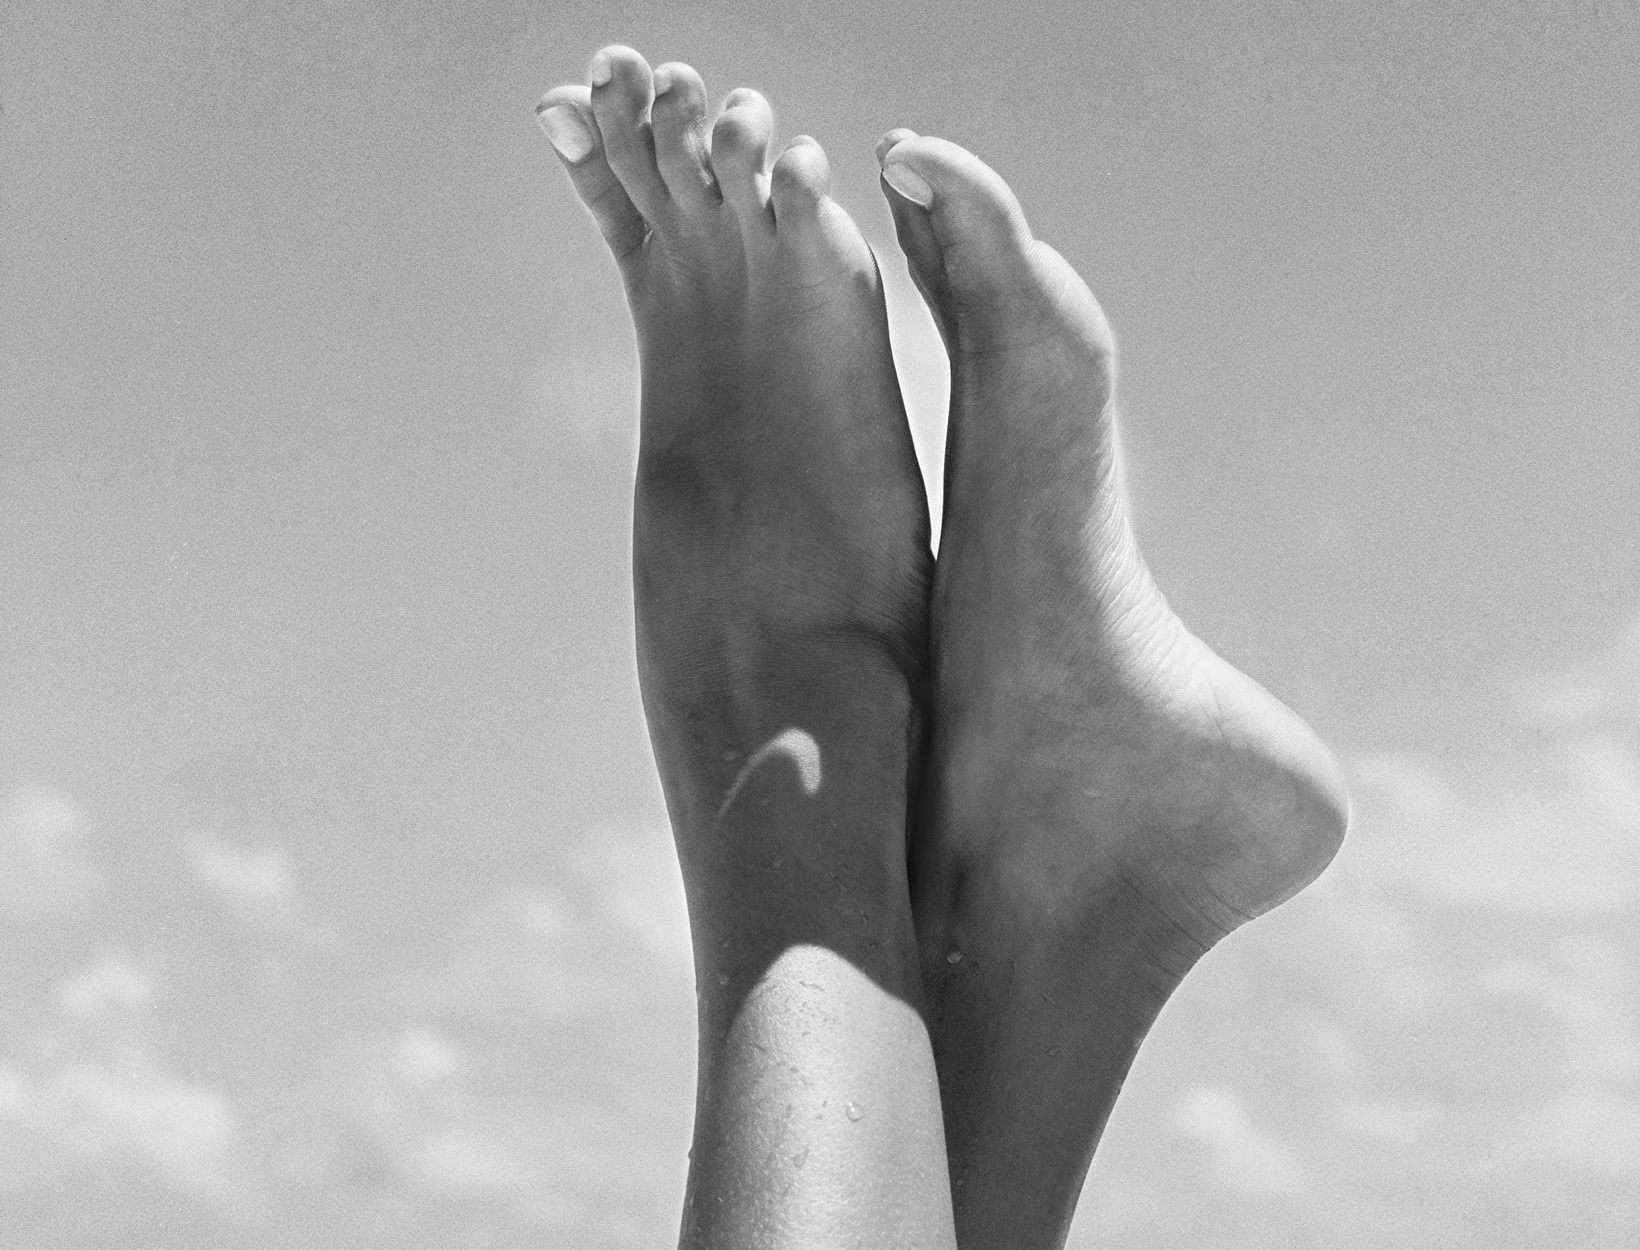 Feet black and white